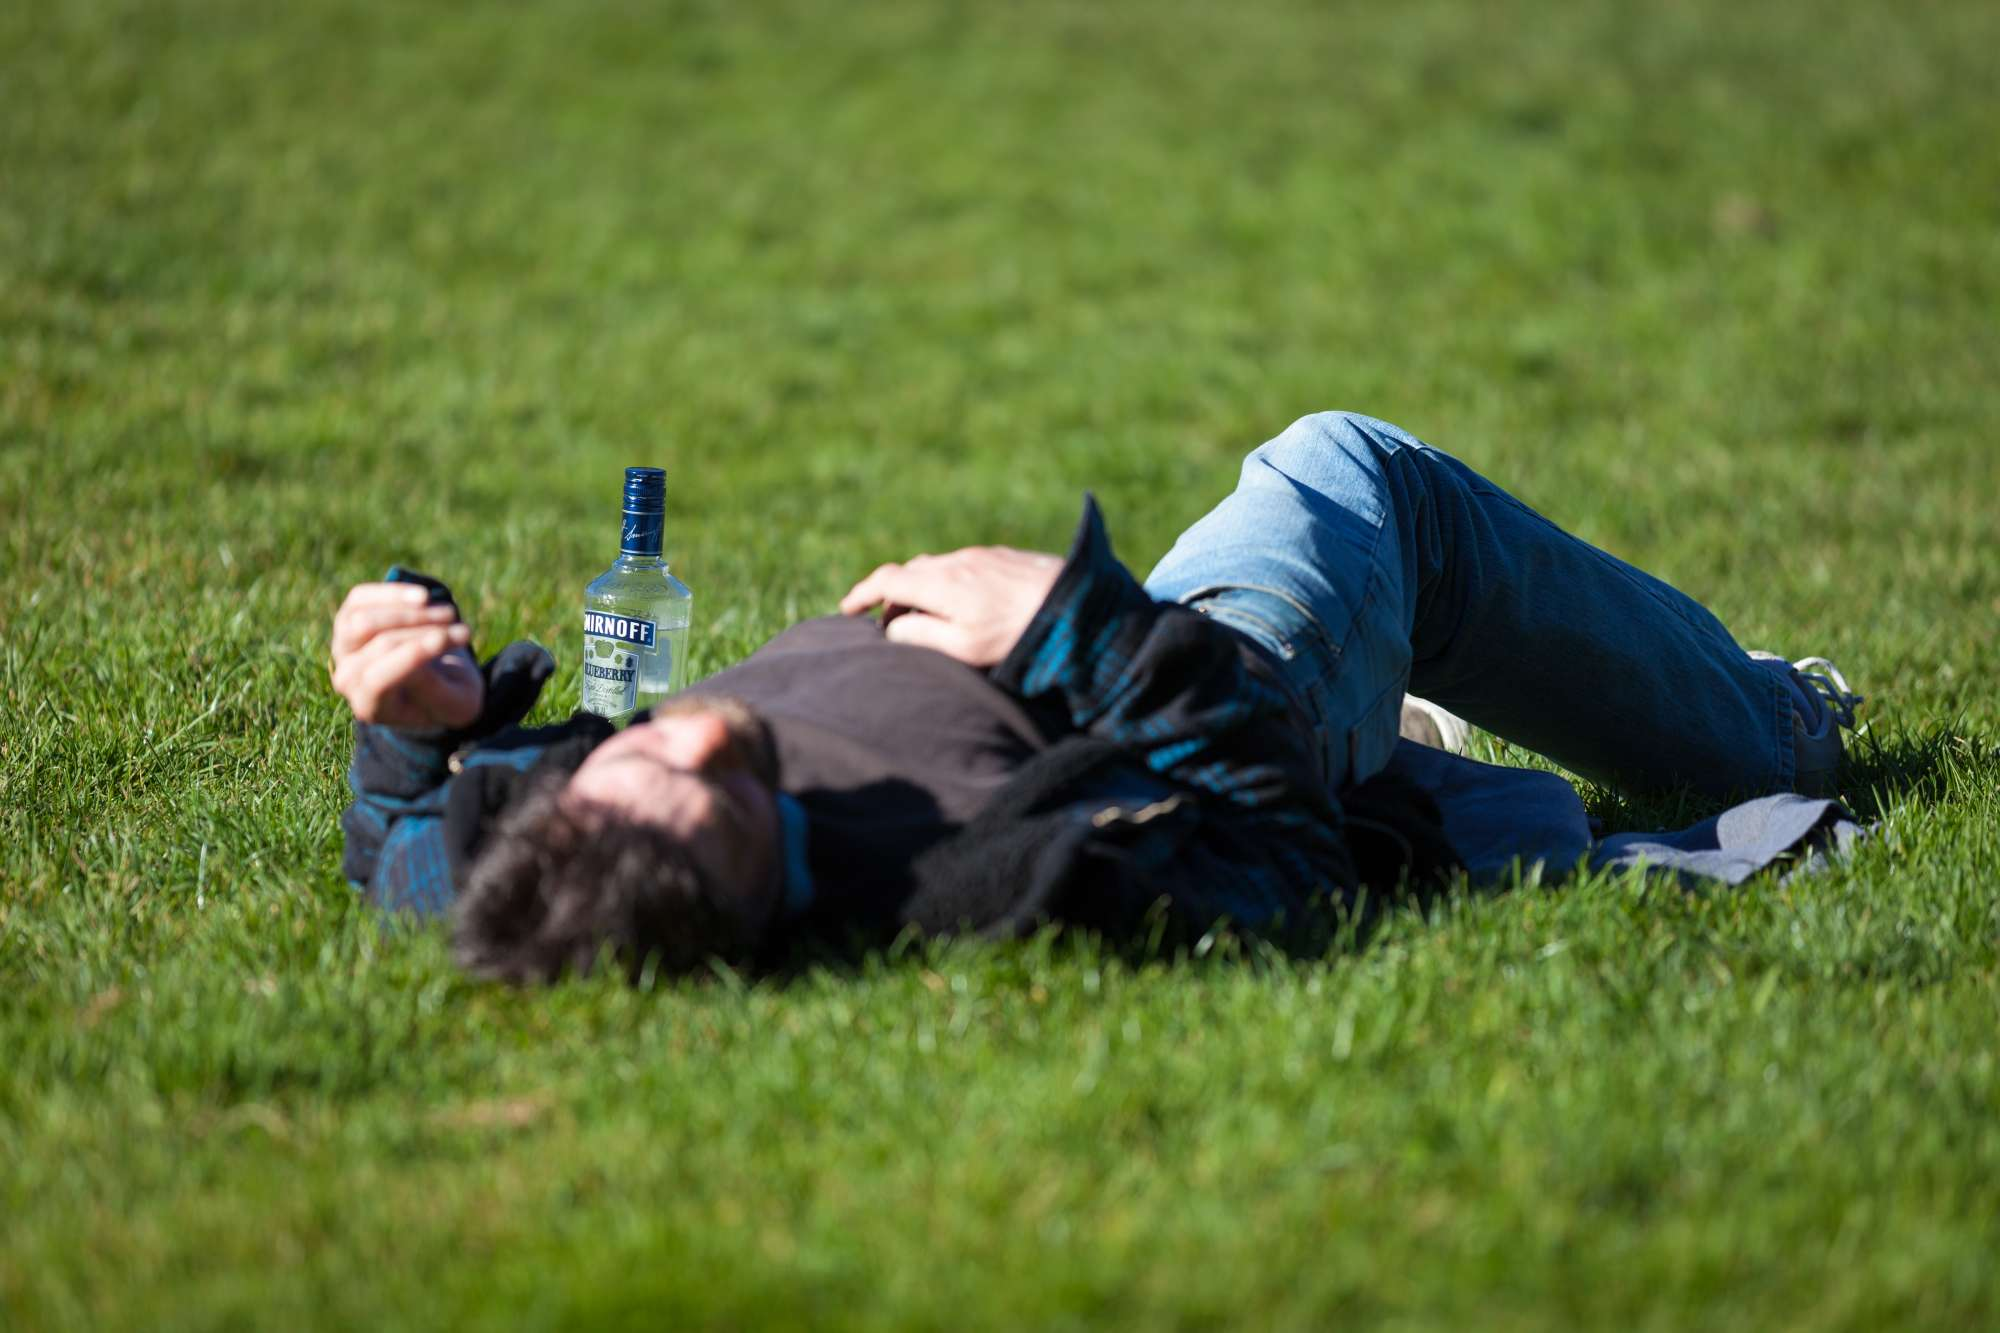 Drunk man laying in grass